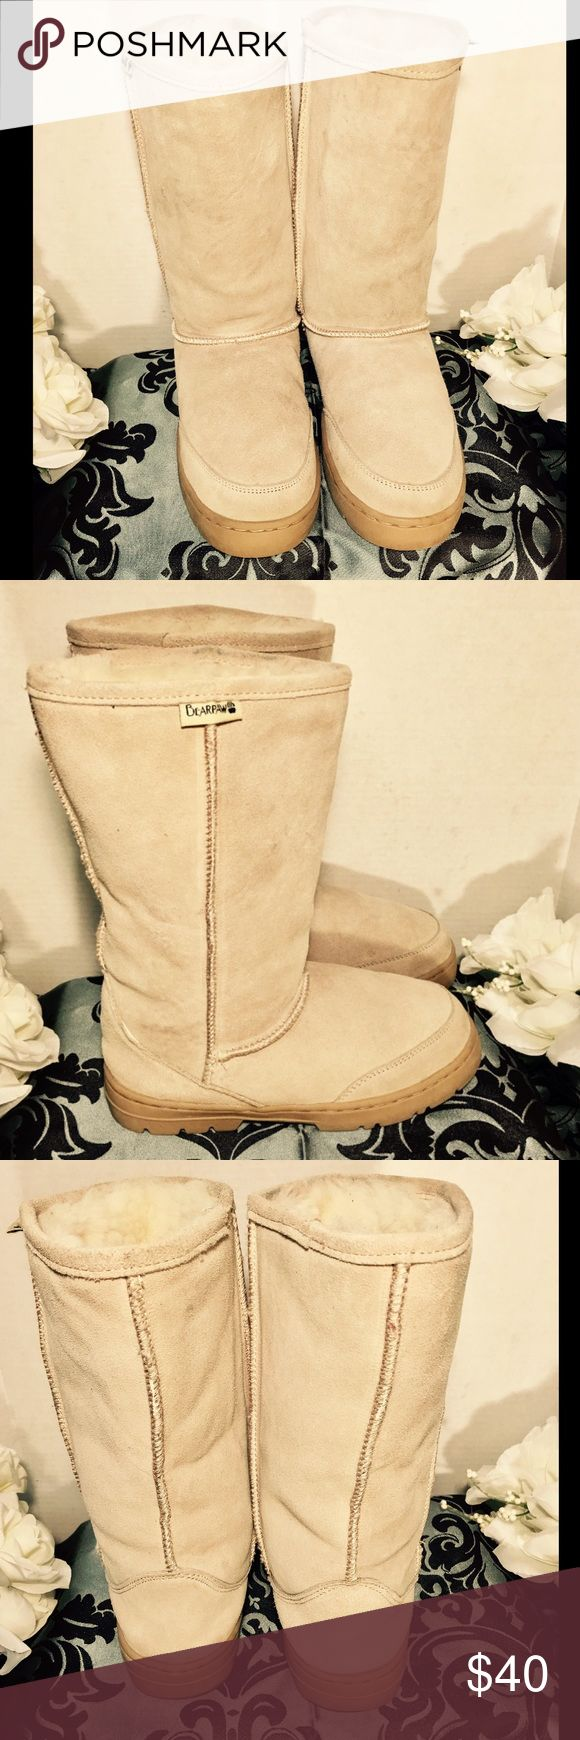 """BEARPAW WOMENS MEDOW TALL 12"""" BOOTS SIZE 8 DESIGNER--BEARPAW.                                            STYLE--MEADOW.                                                     MATERIALS--SHEEPSKIN FOOTBED AND LINING.                                                                      SIZE--8.                                                                    PREOWNED GREAT CONDITION WITH NORMAL SIGNS OF WEAR                                        SMOKE FREE HOME. BEARPAW Shoes Winter & Rain…"""